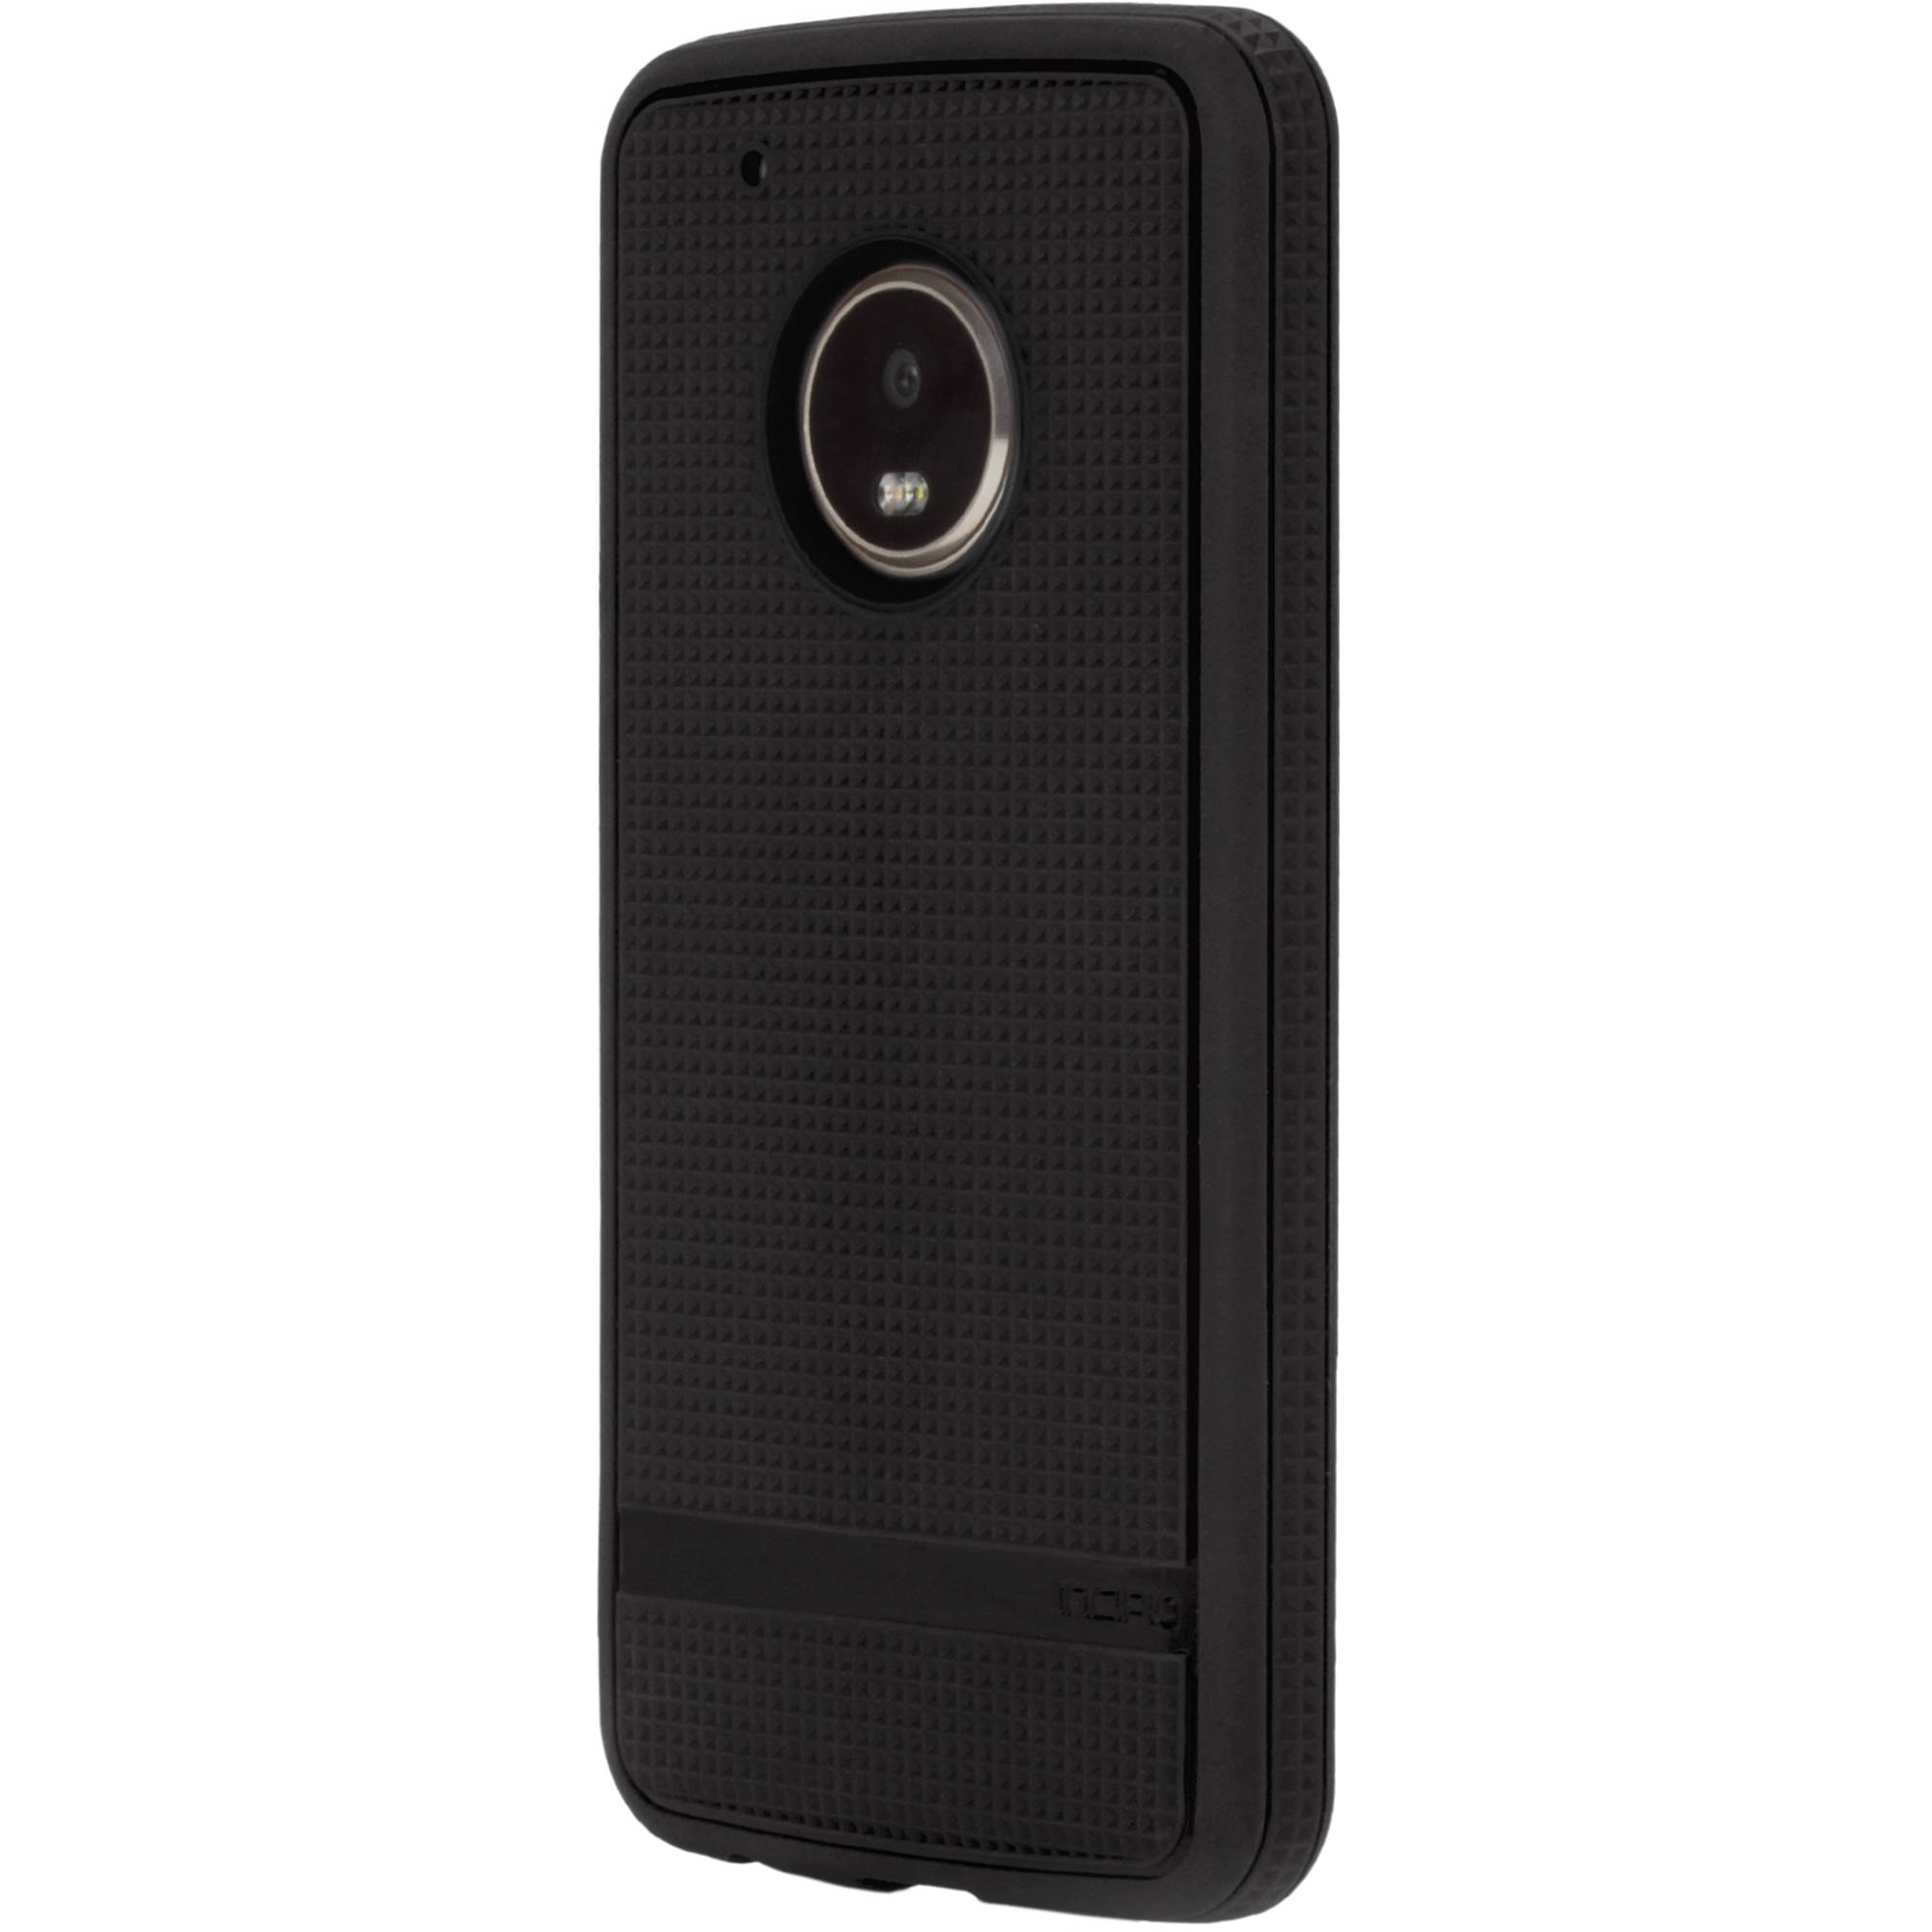 newest 786ae cc7c9 Incipio NGP [Advanced] Case for Moto G5 Plus (Black)